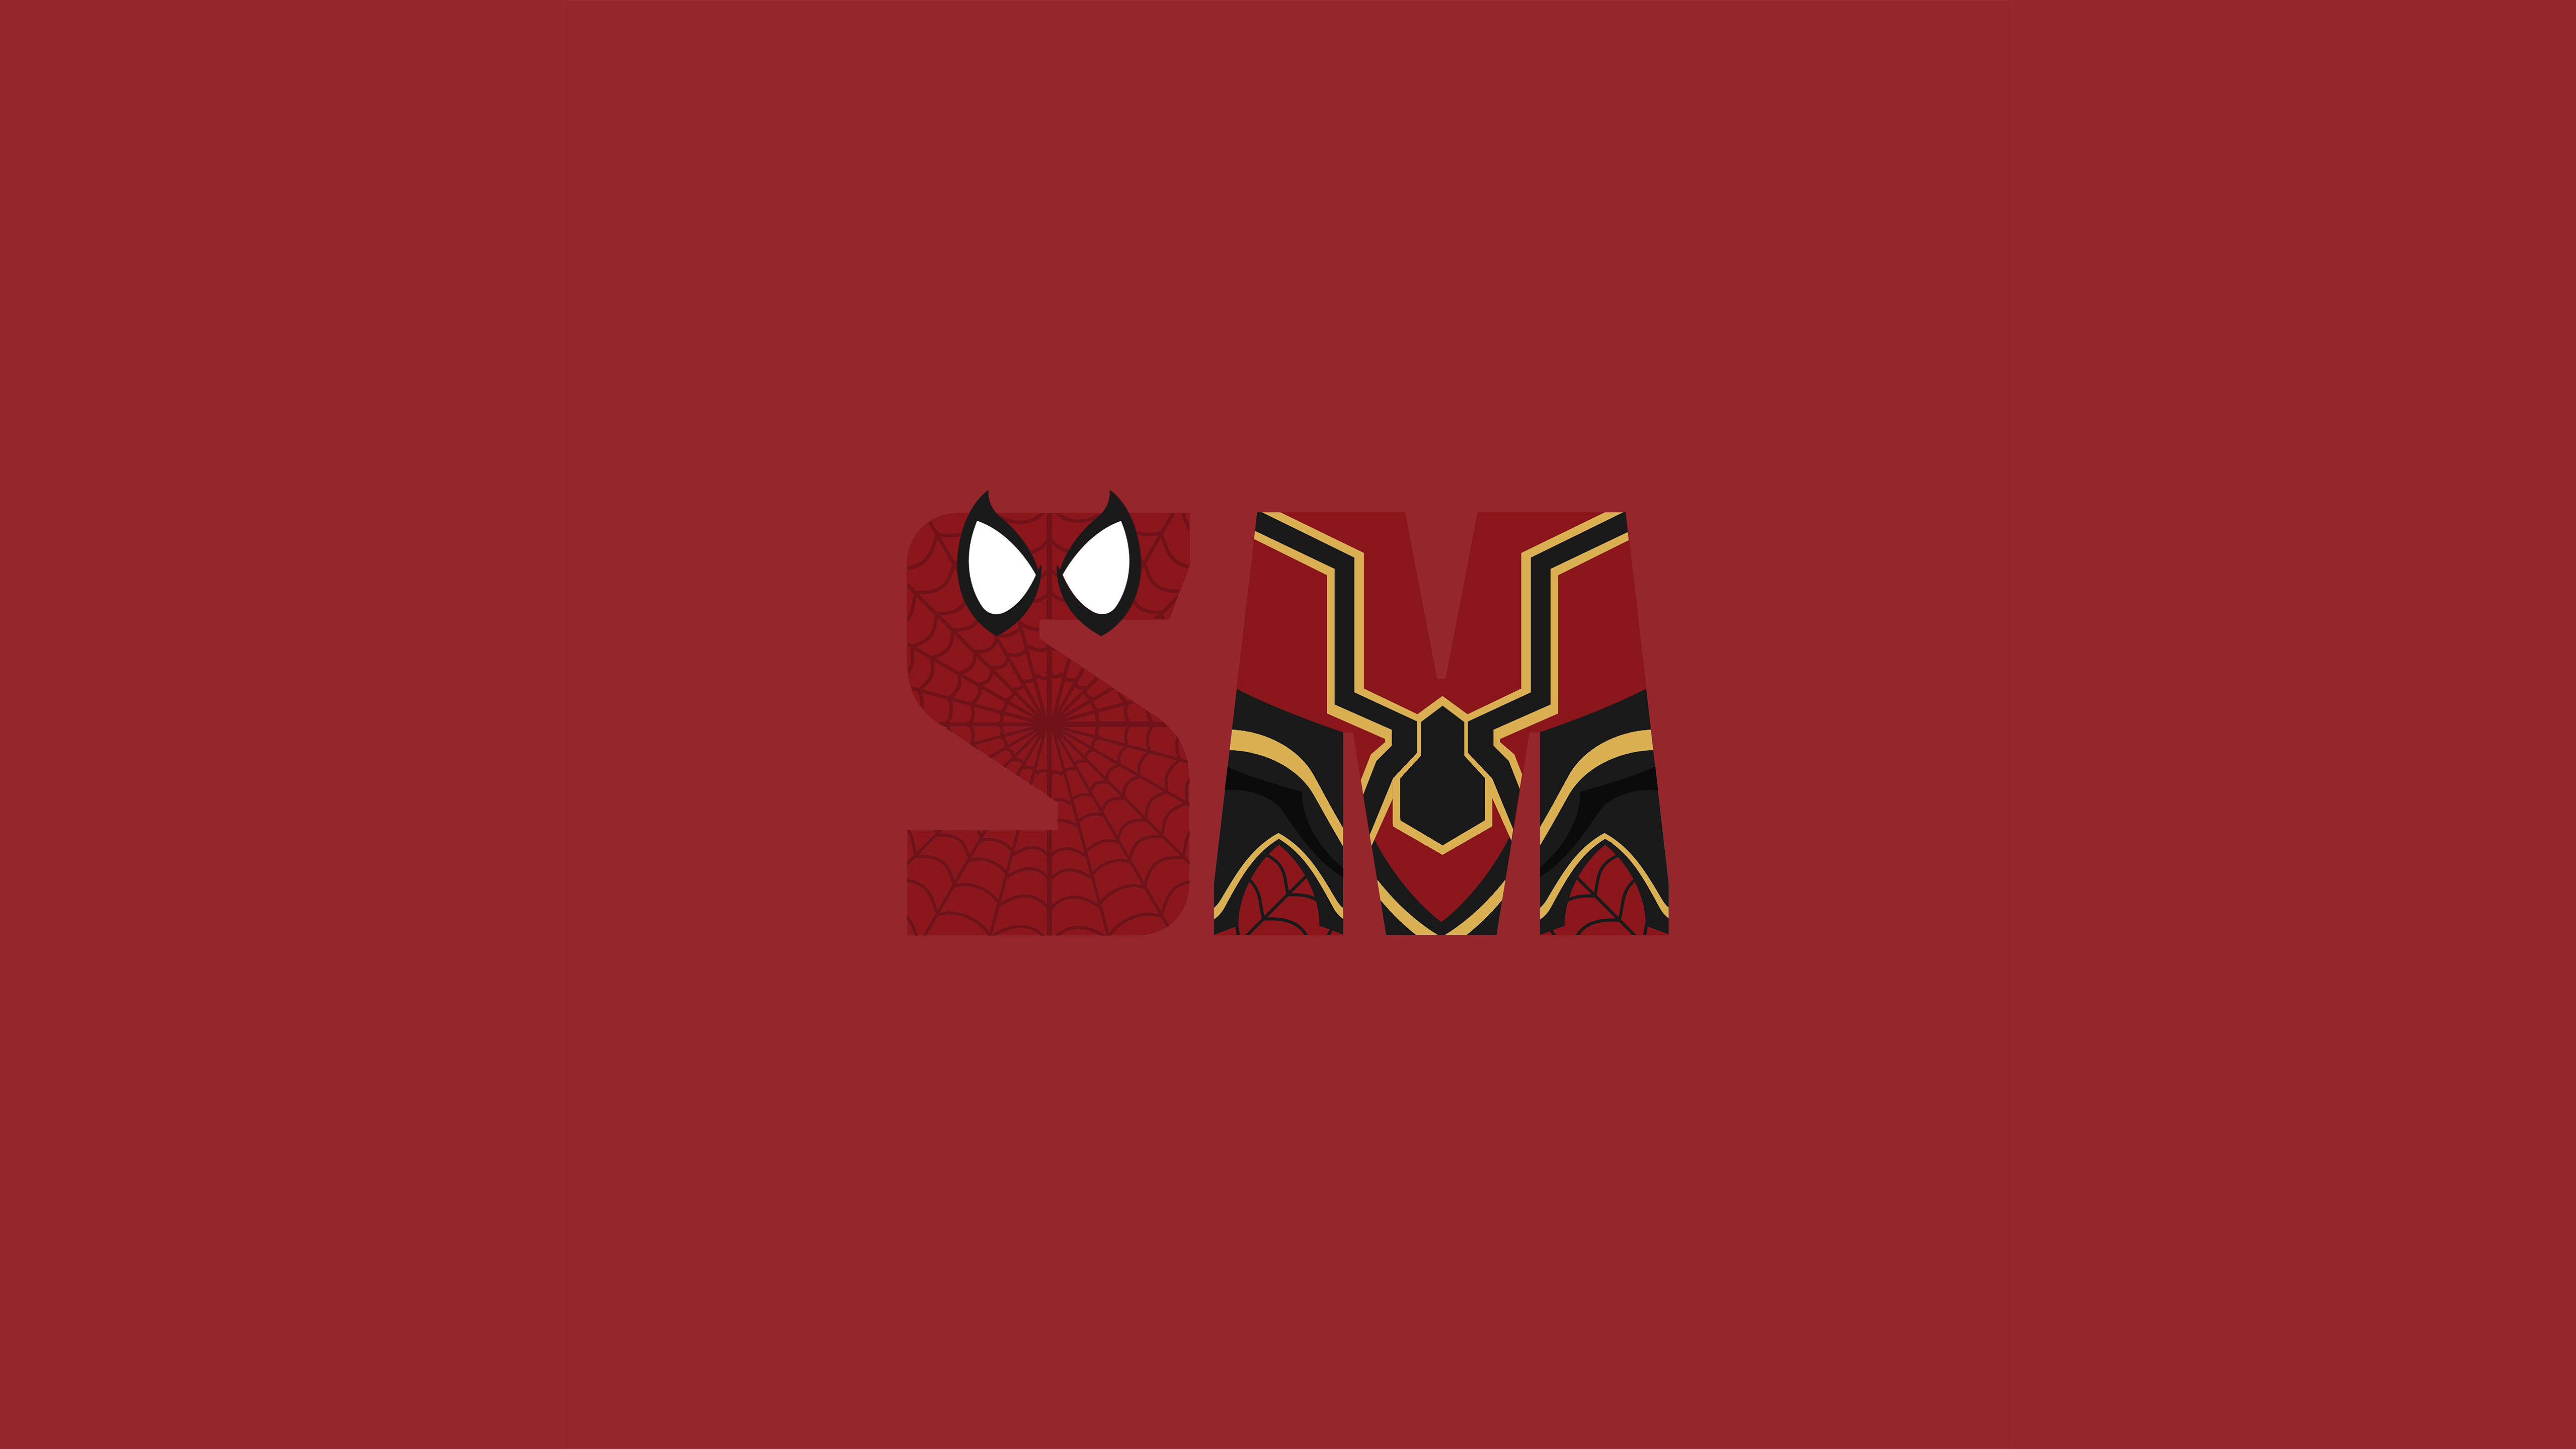 Game Of Thrones Quotes Mobile Wallpaper Spiderman Minimalism Avengers Infinity War 5k Hd